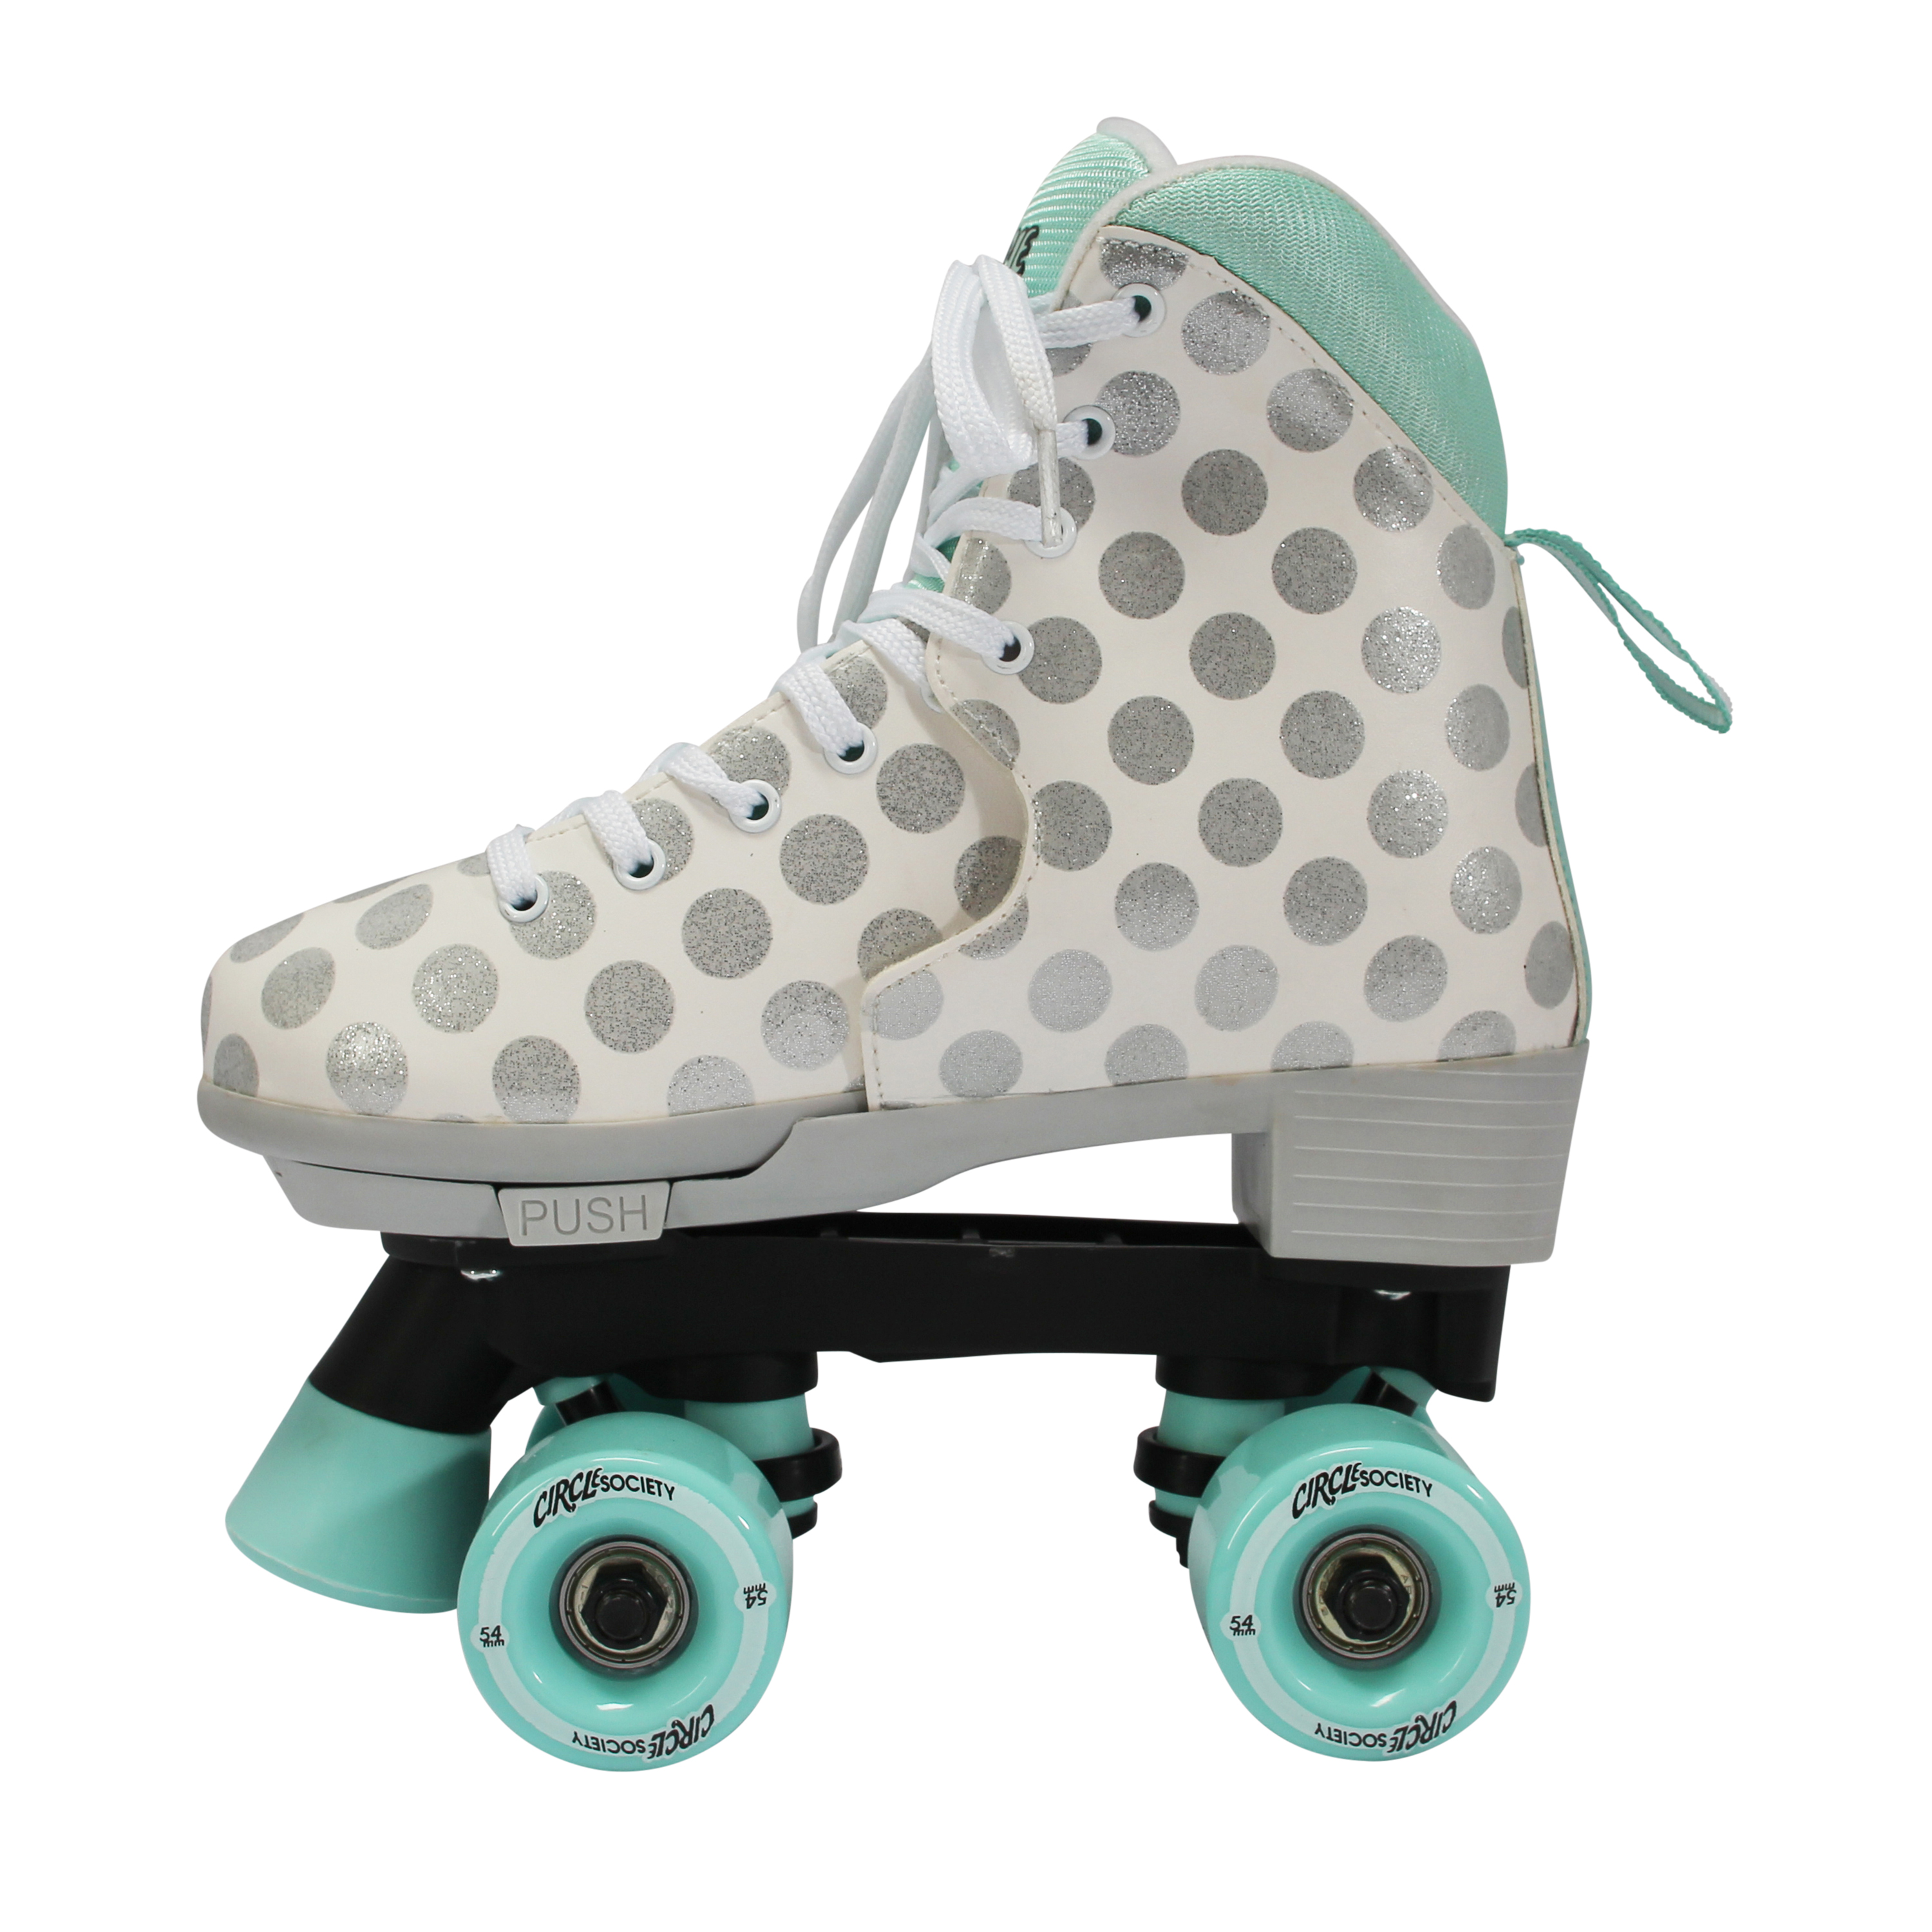 Circle Society Classic Adjustable Indoor and Outdoor Childrens Roller Skates Craze Sugar Drops